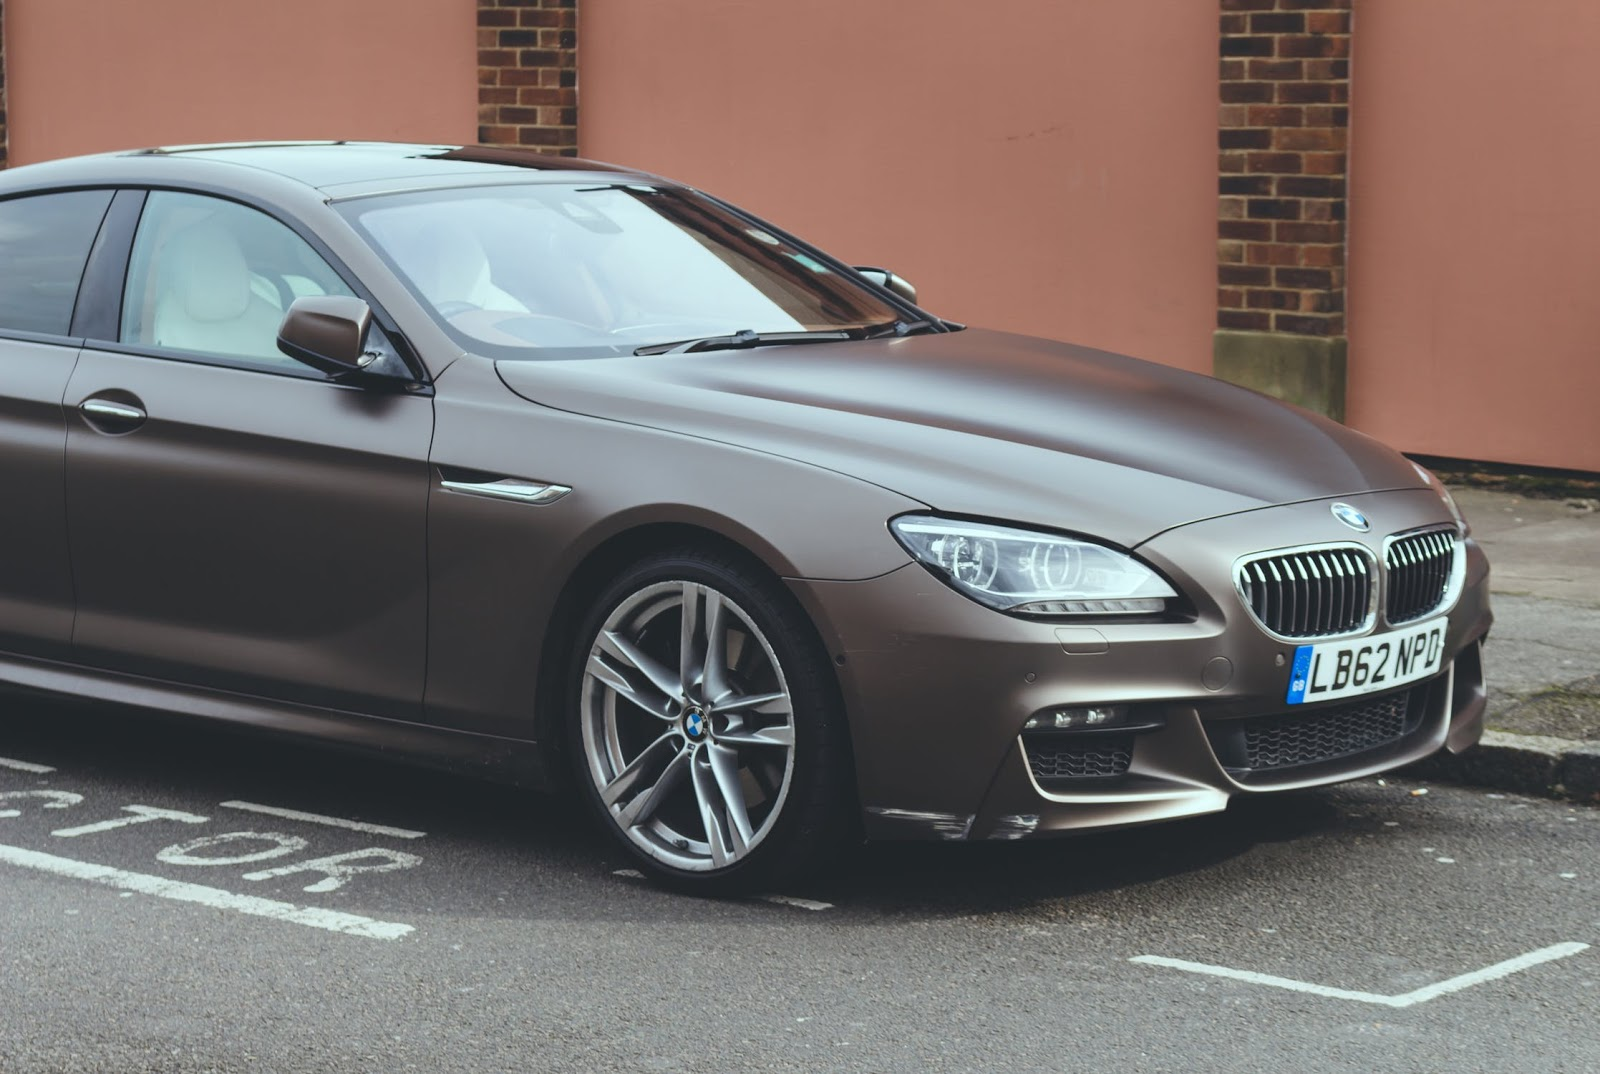 A brown BMW parked by the curb.